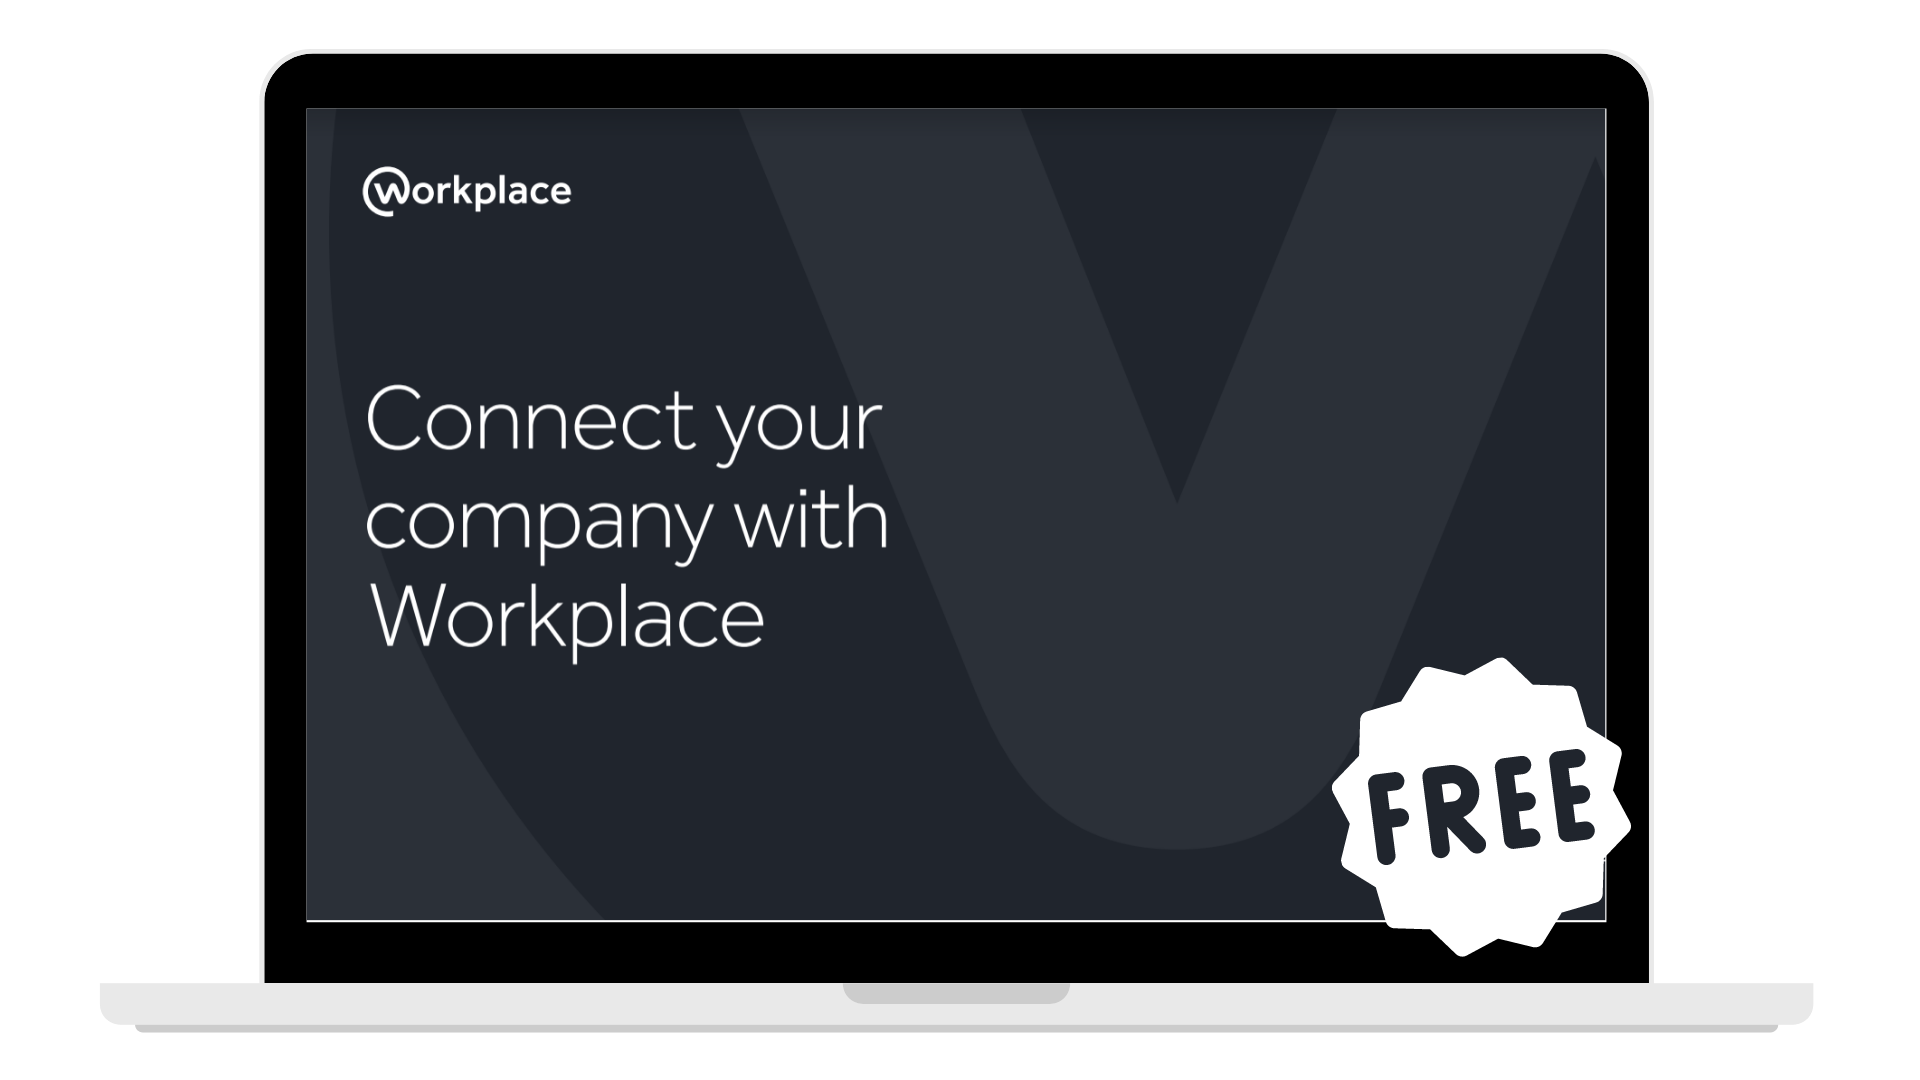 Connecting your company with workplace - Laptop